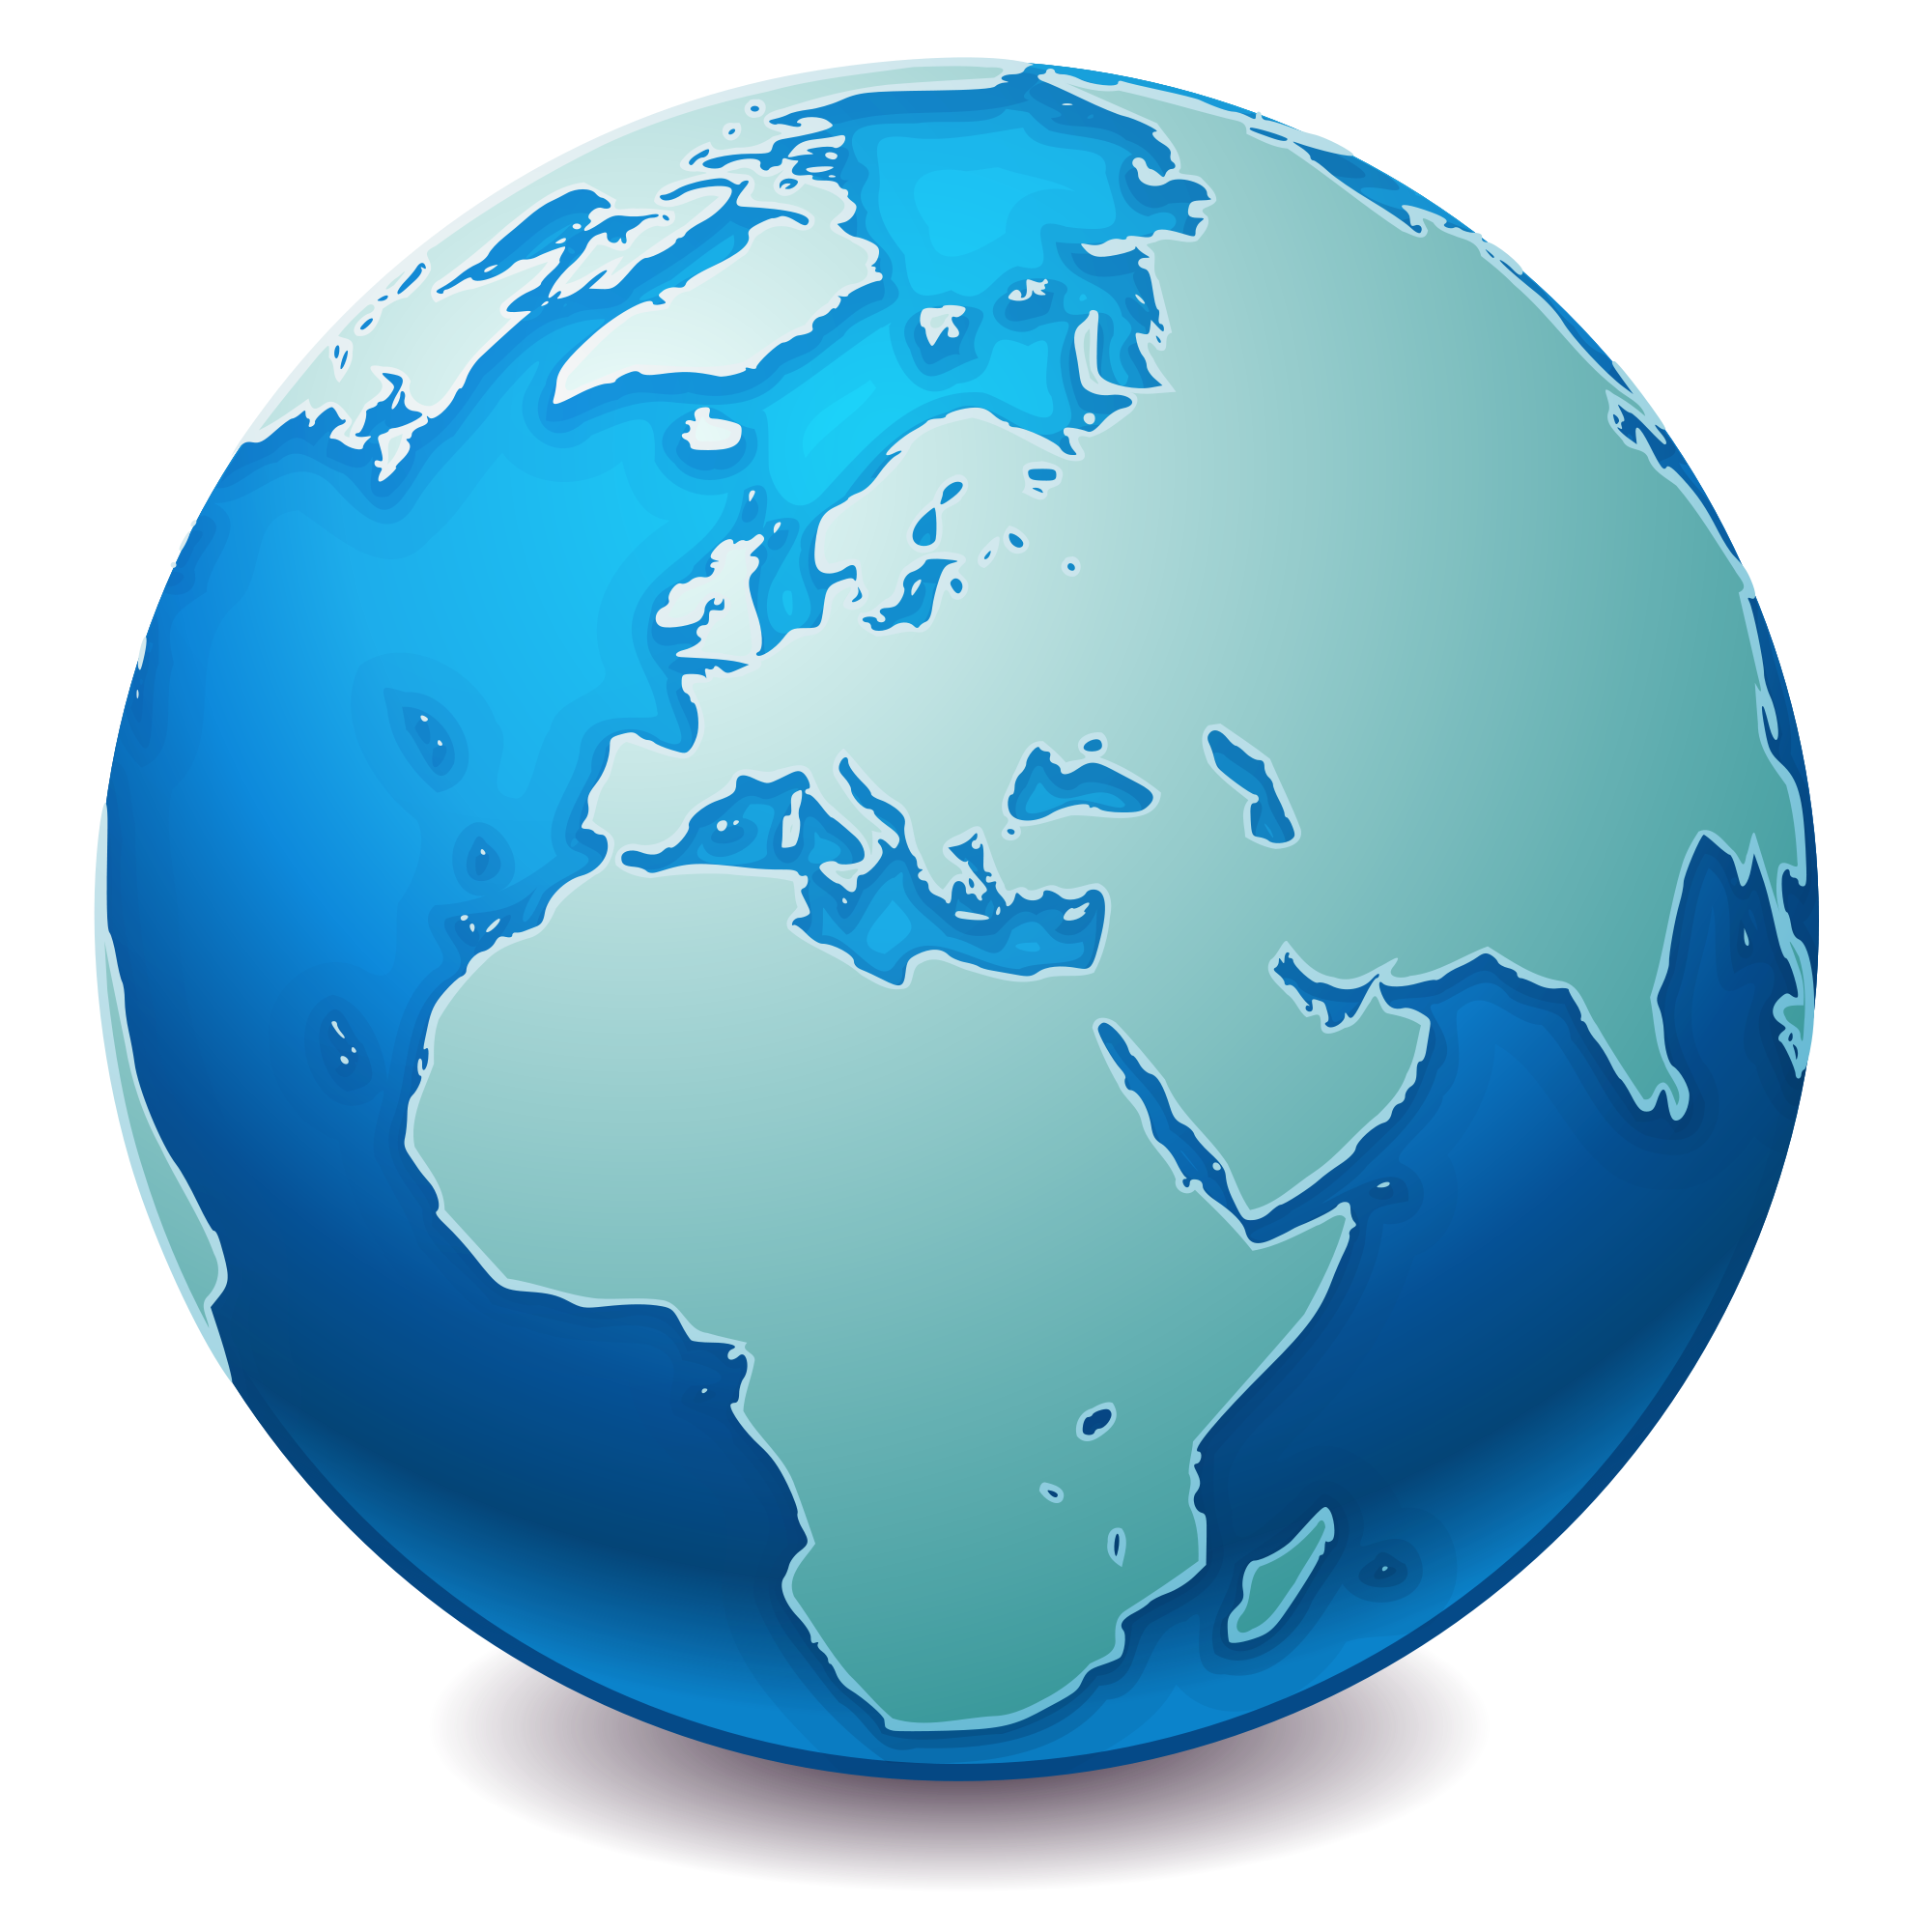 File erioll svg wikimedia. World png image clipart free